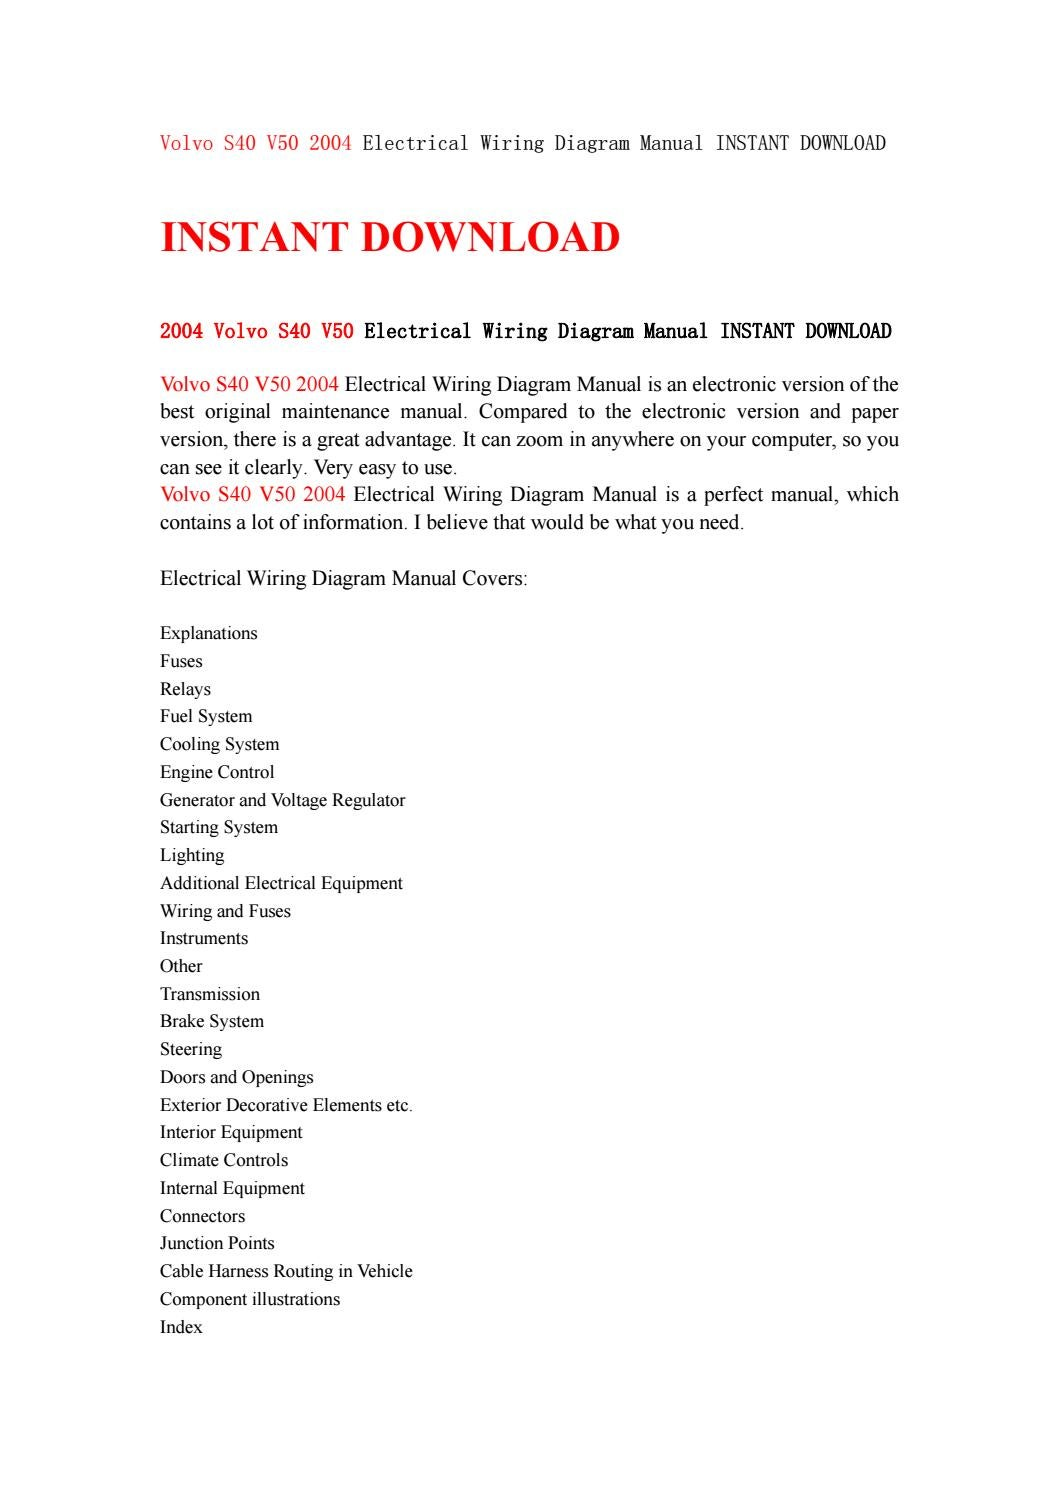 2004 Volvo V40 Fuse Diagram Wiring Library 2005 S40 Parts Suspension 2007 V50 Electrical Manual Instant Download By Kjjsemfmse Issuu